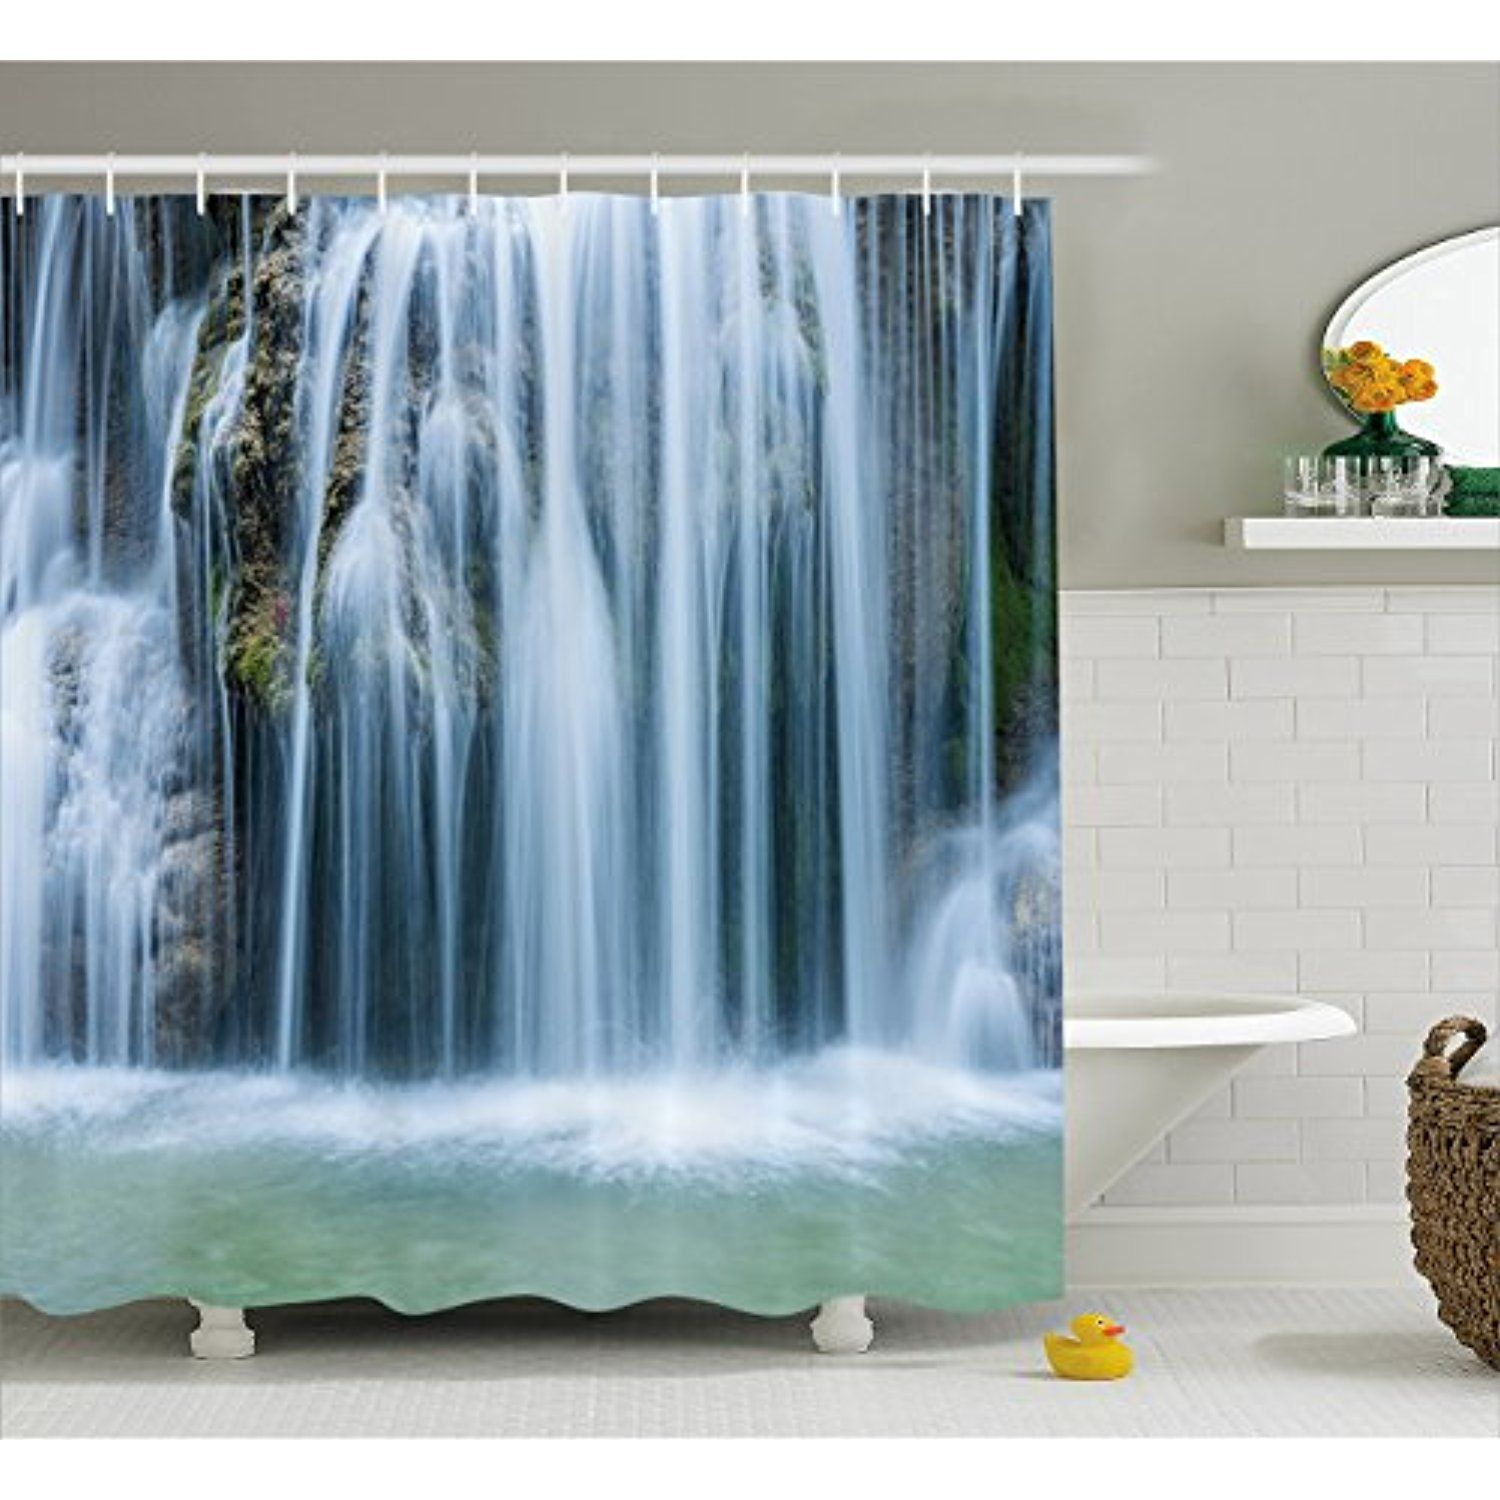 Waterfall Shower Curtain by Lunarable, Massive Magnificent Cascaded ...